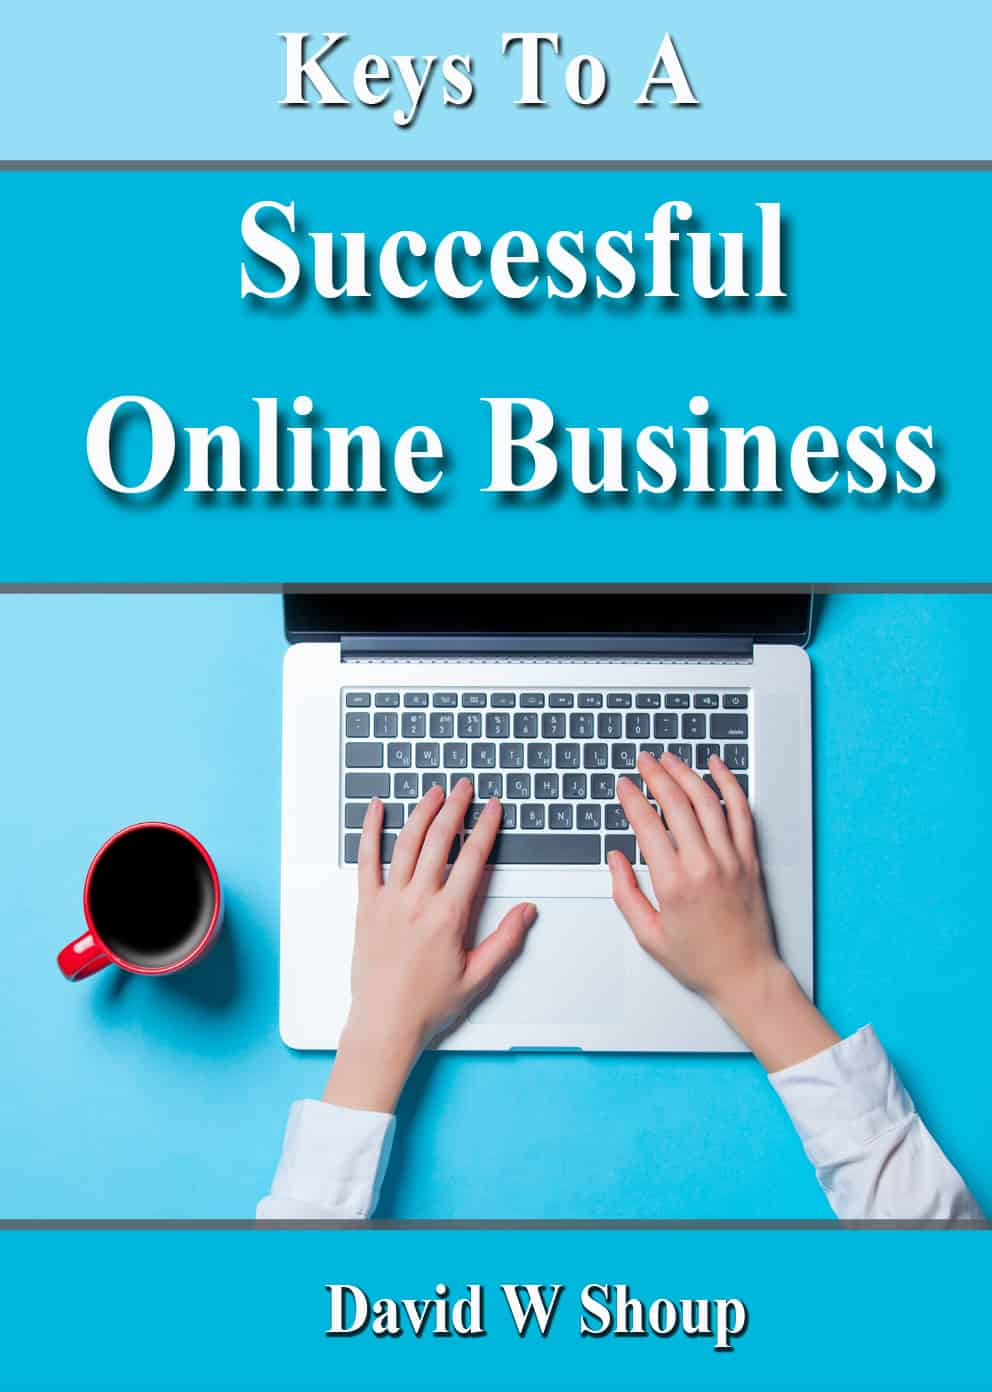 10 Keys cover - 10 Keys To YOUR Online Business Success